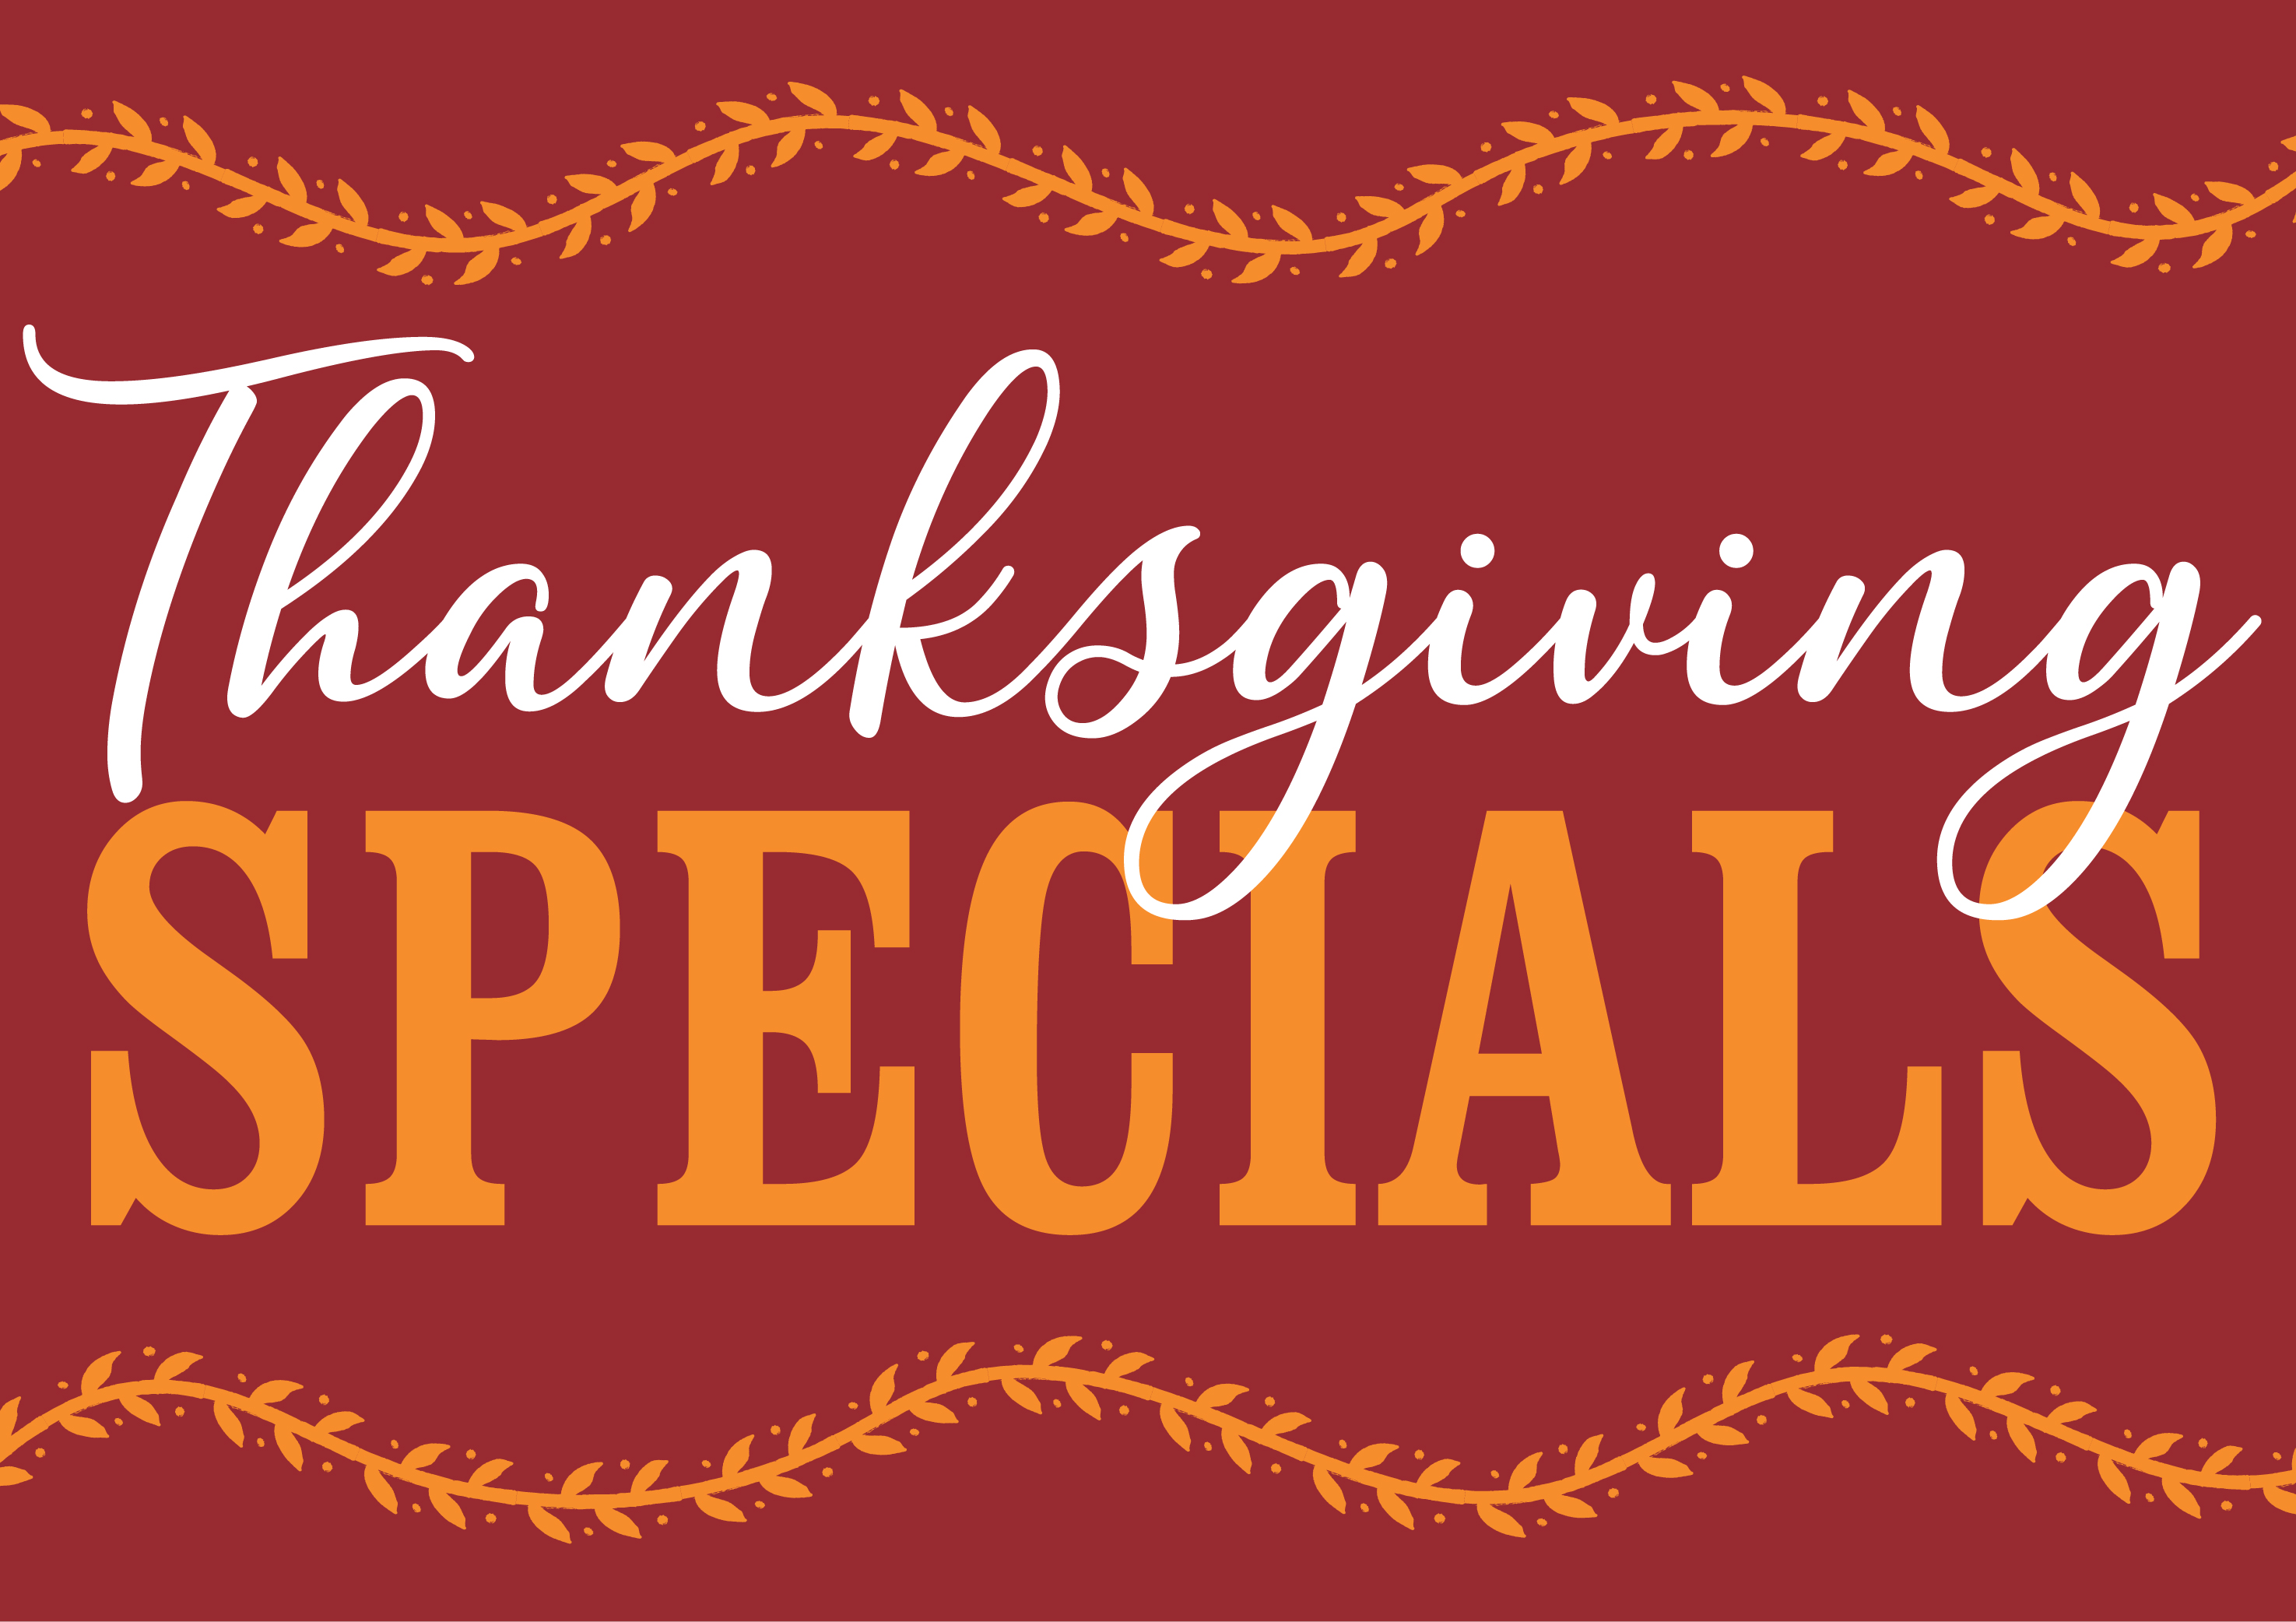 Thanksgiving specials webslider 01